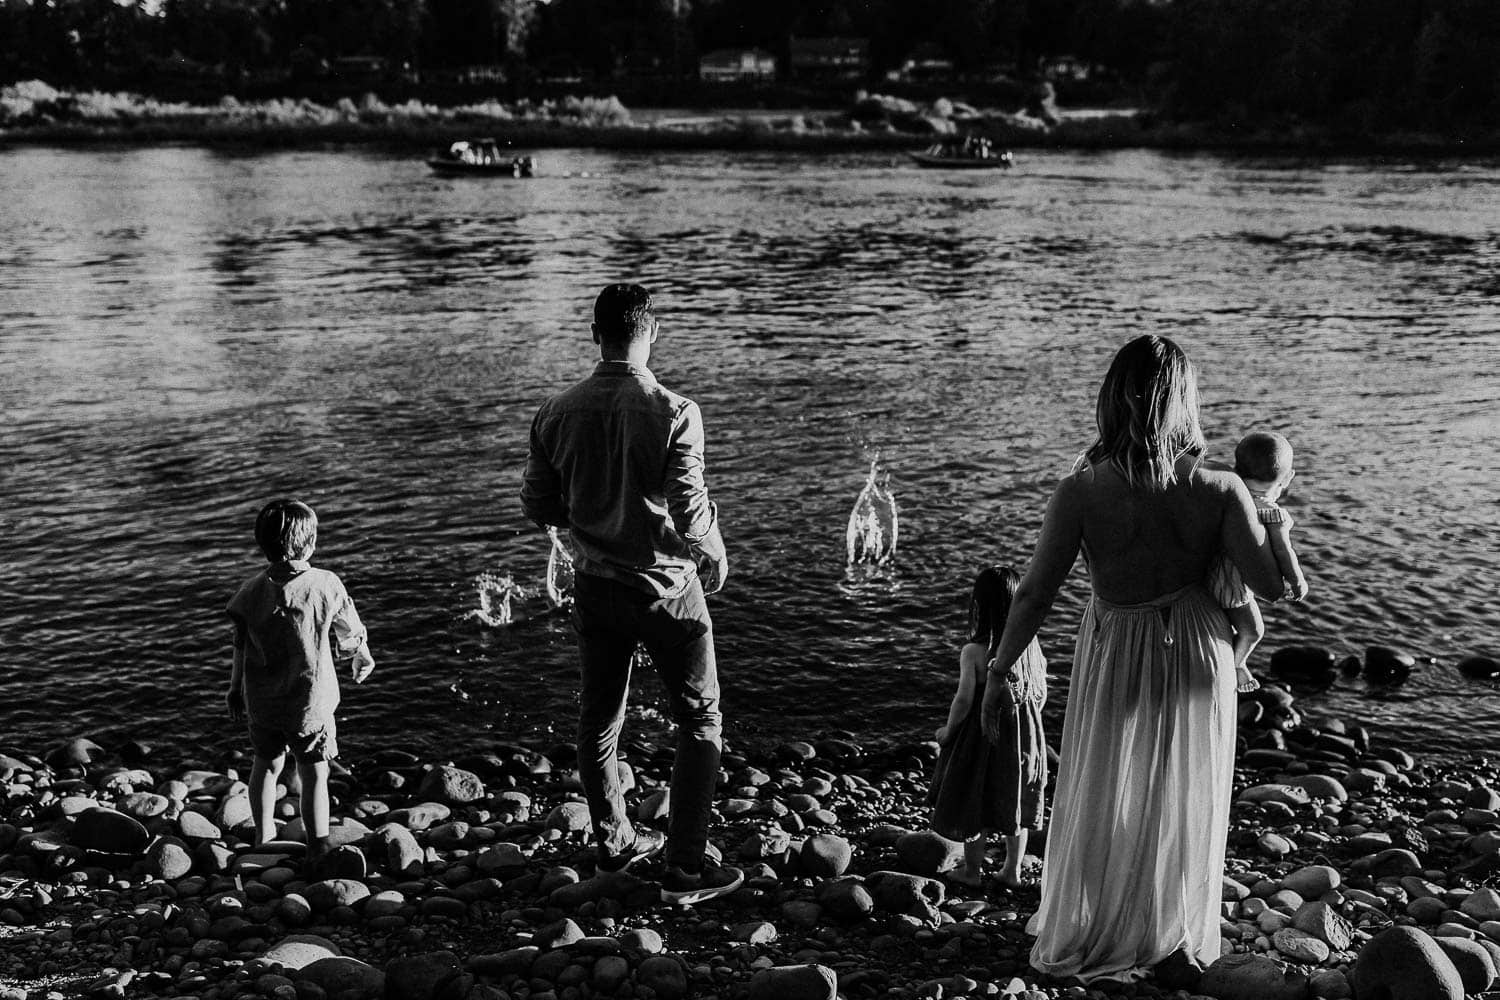 Family standing next to a river throwing rocks in - black and white image